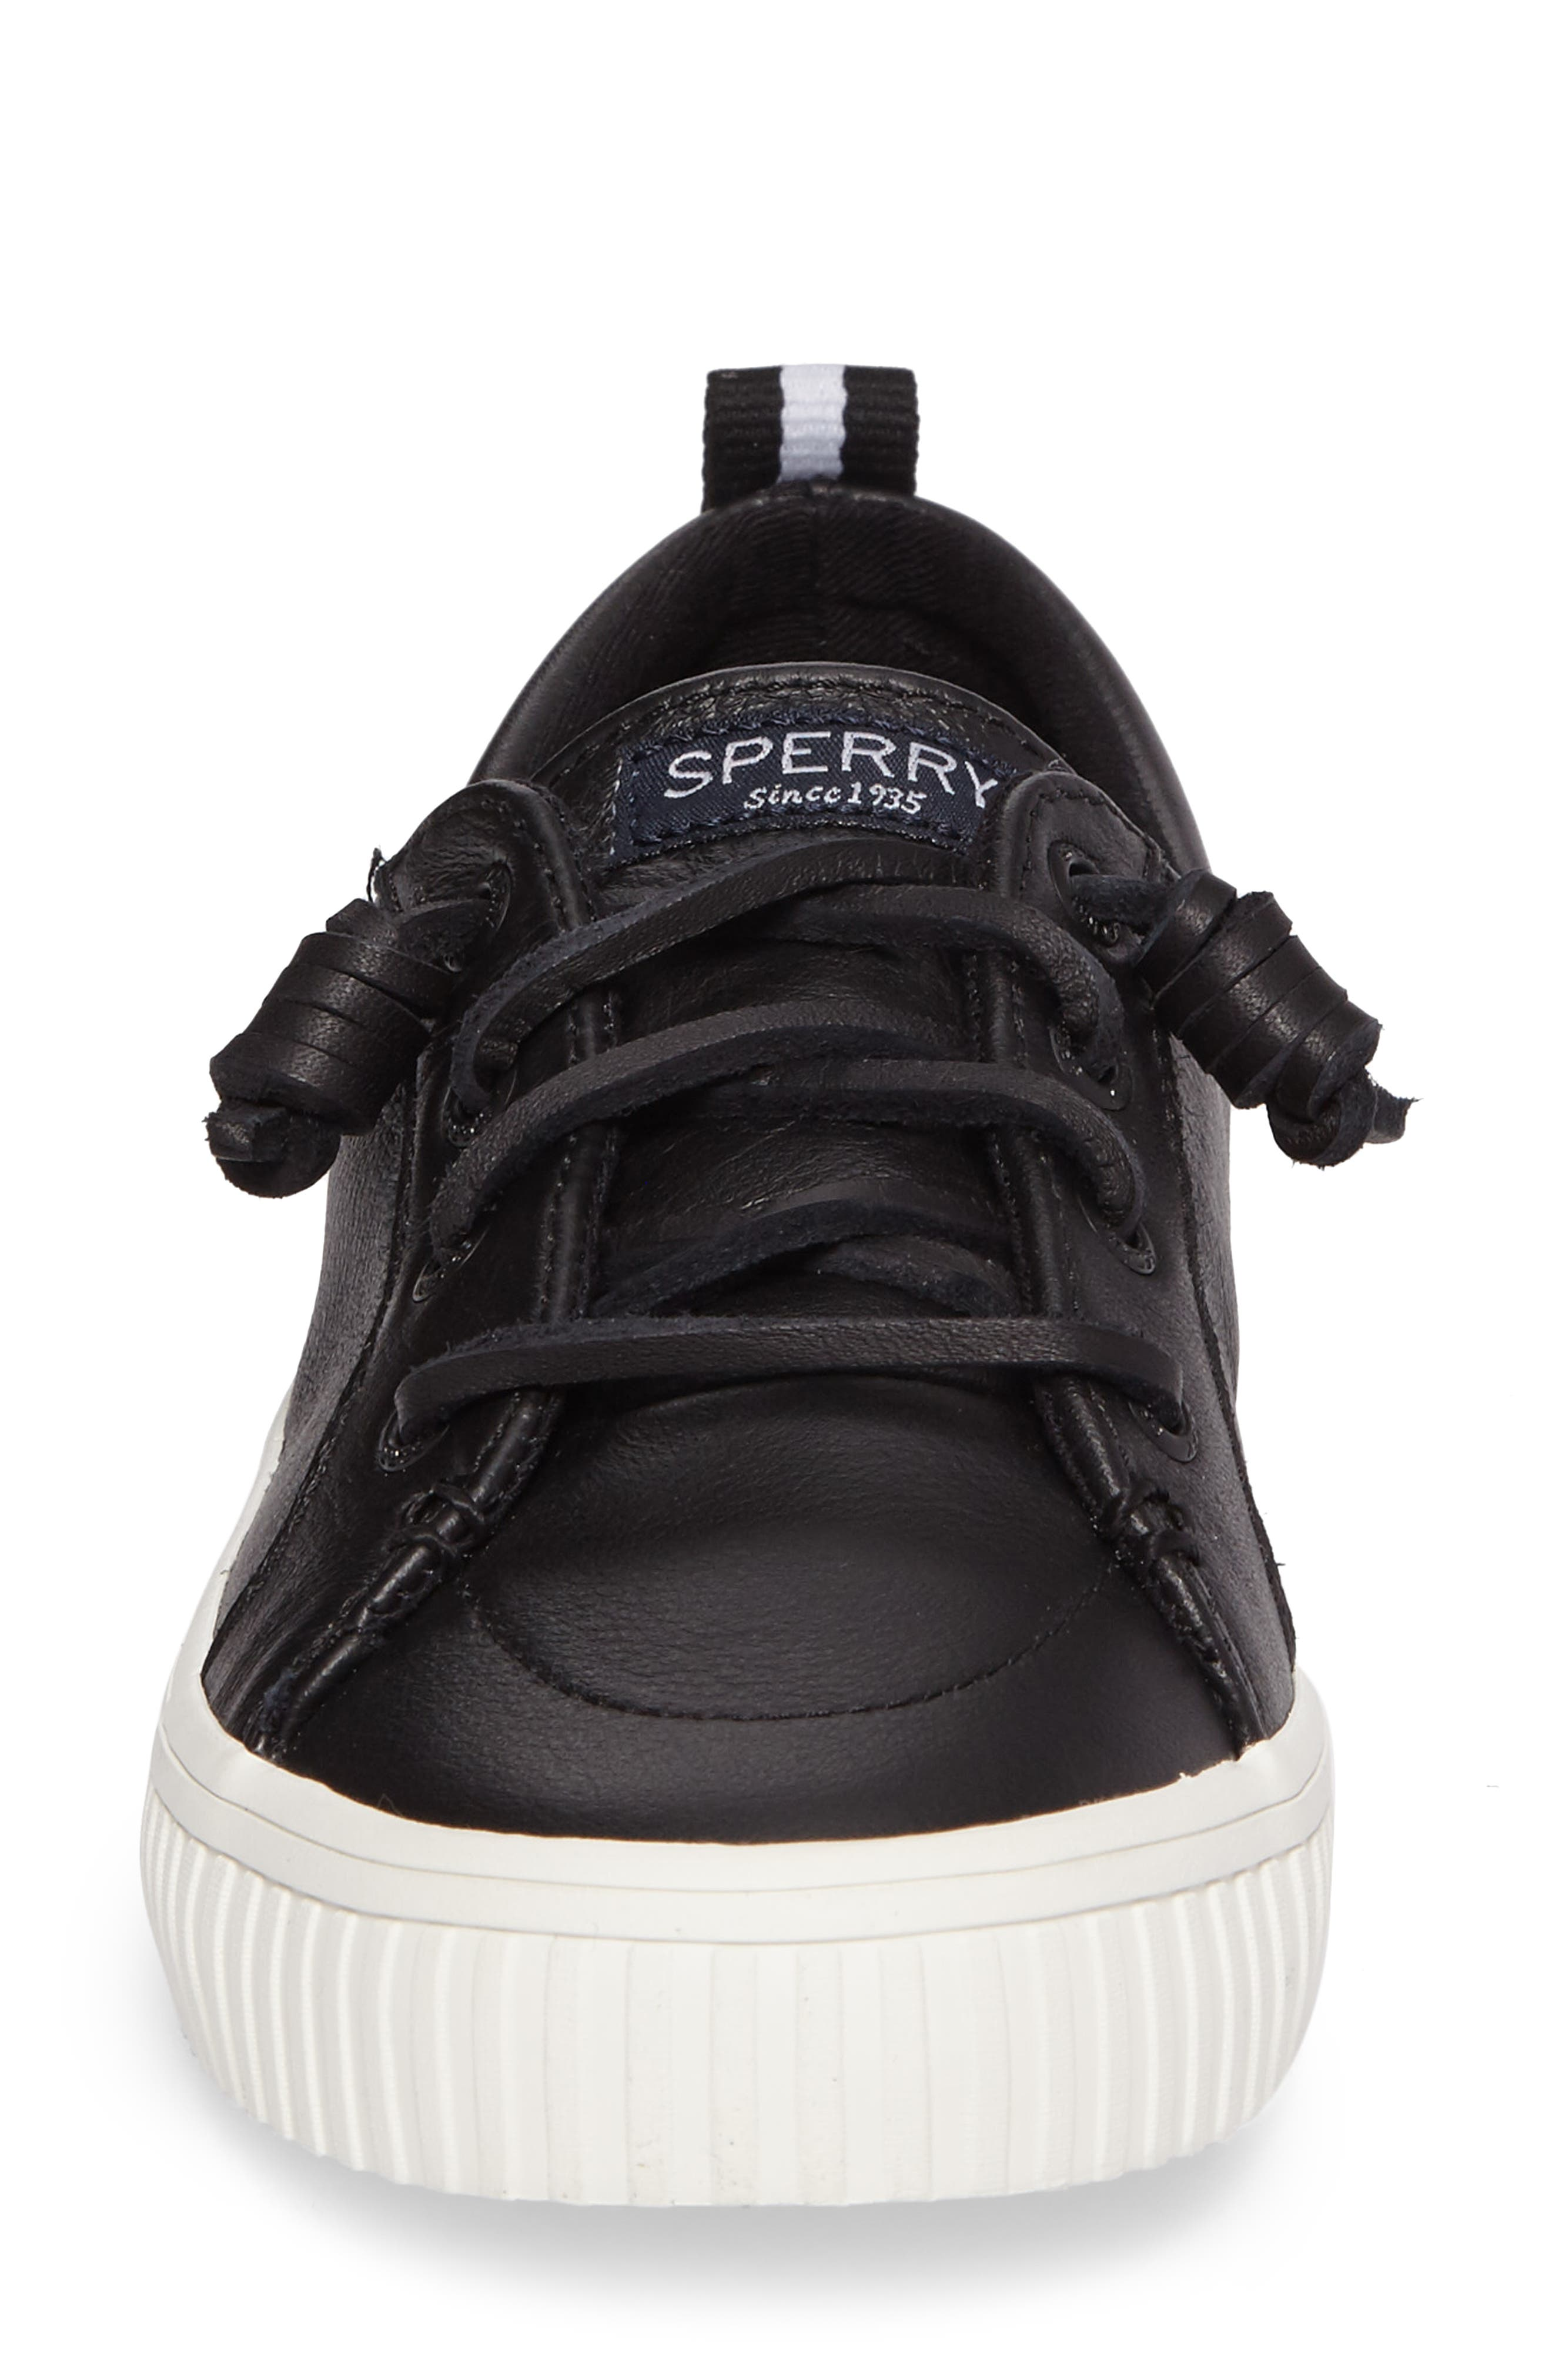 Crest Vibe Creeper Sneaker,                             Alternate thumbnail 4, color,                             Black Leather